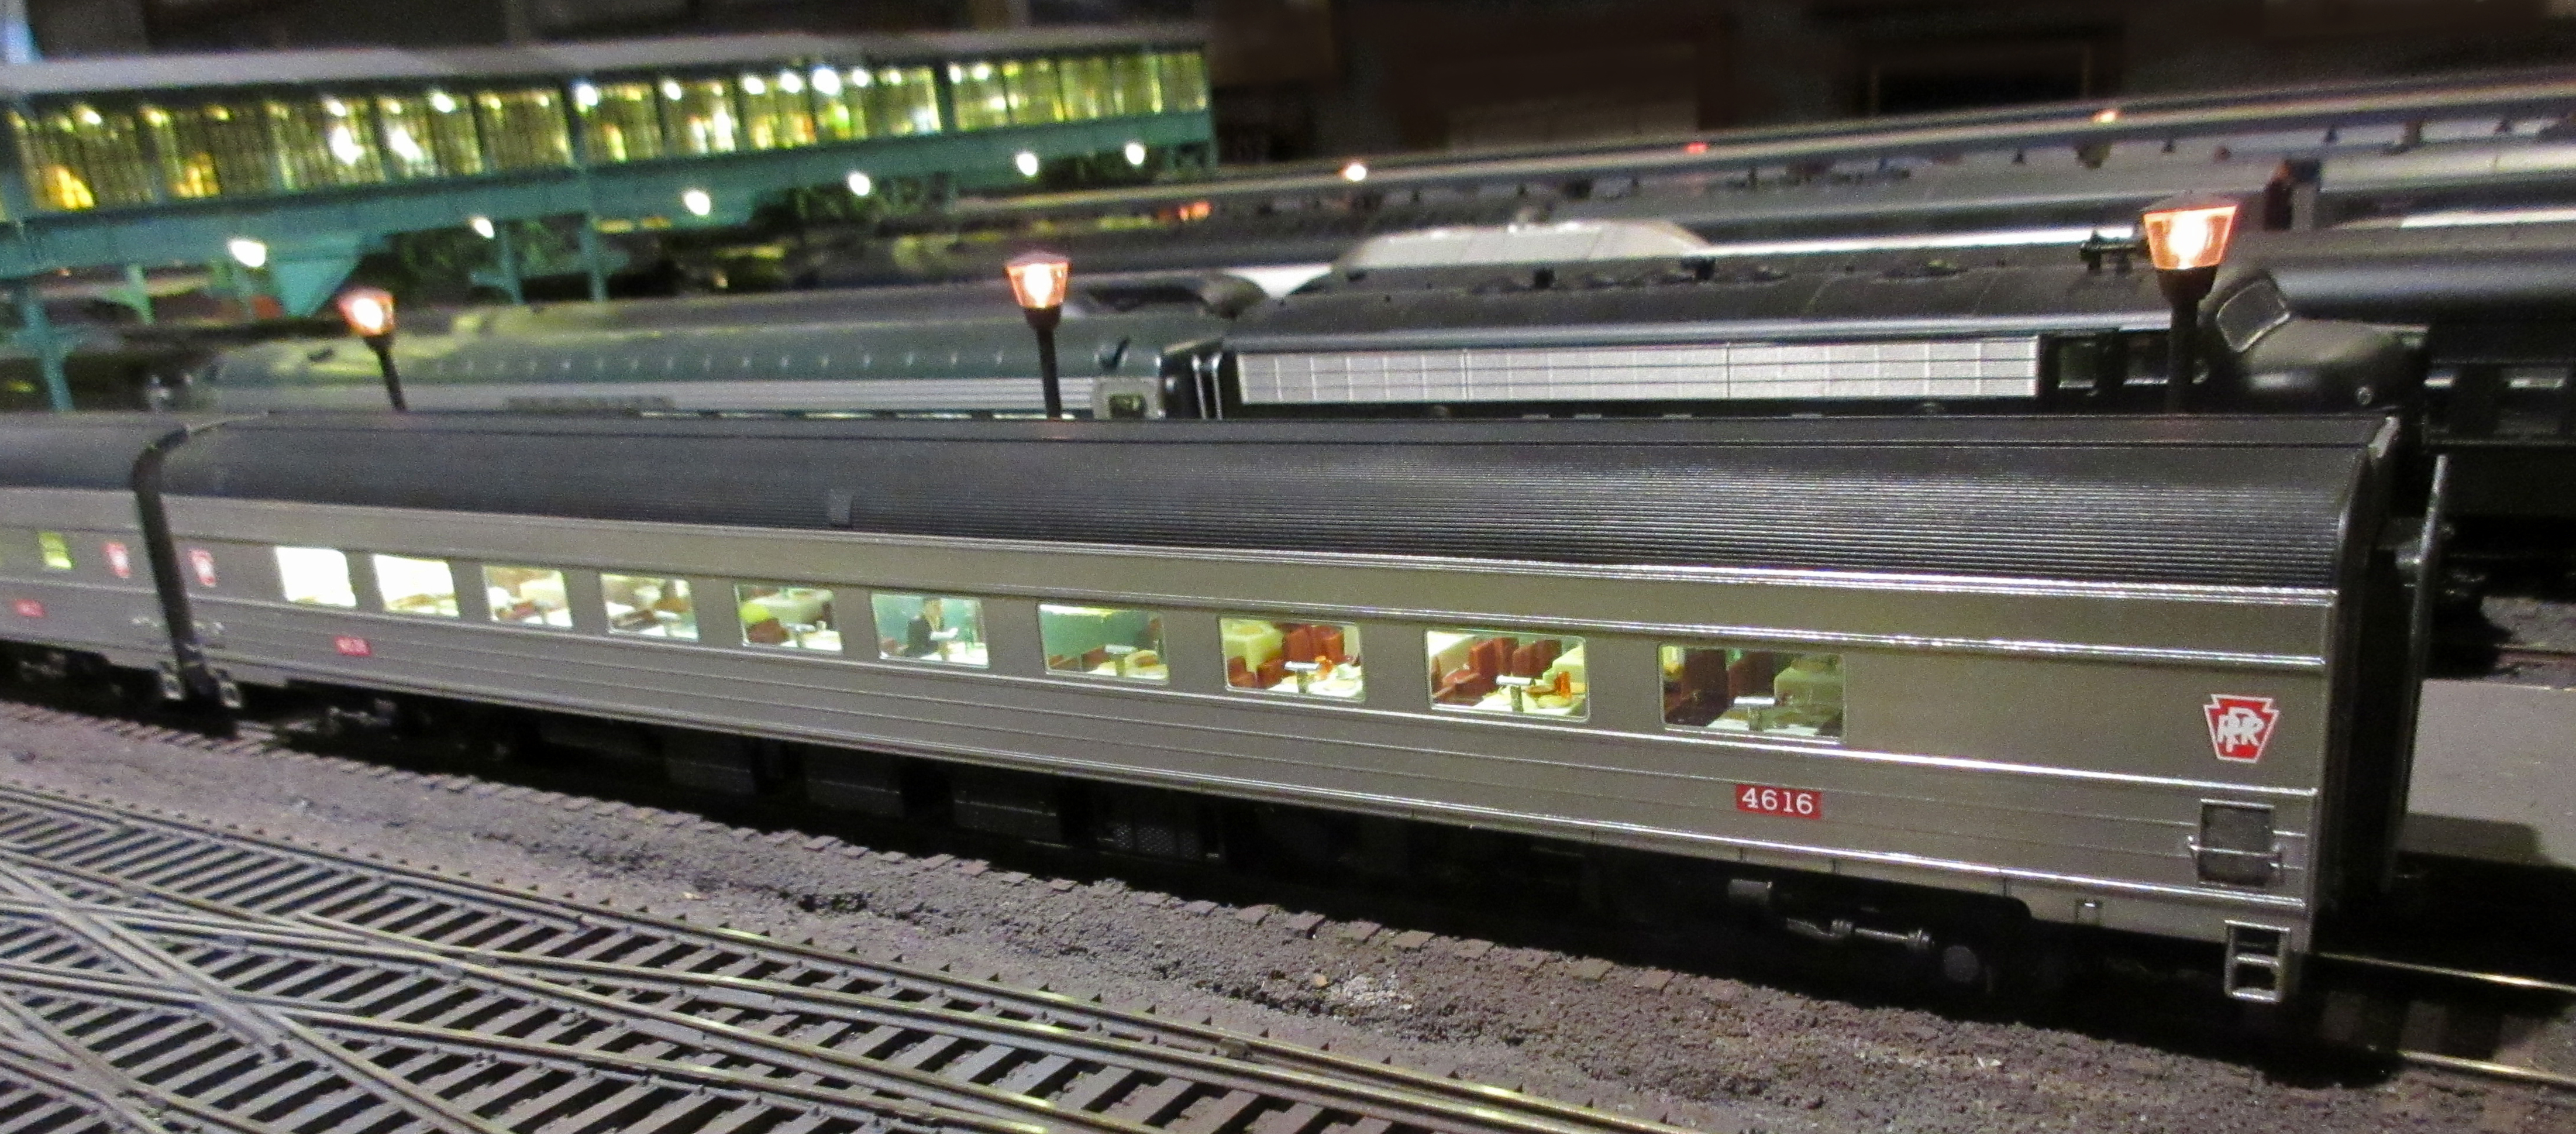 Diy Interior Lighting Do People This Model Railroader Two Circuits Magazine Railroading Img 0068 Fix